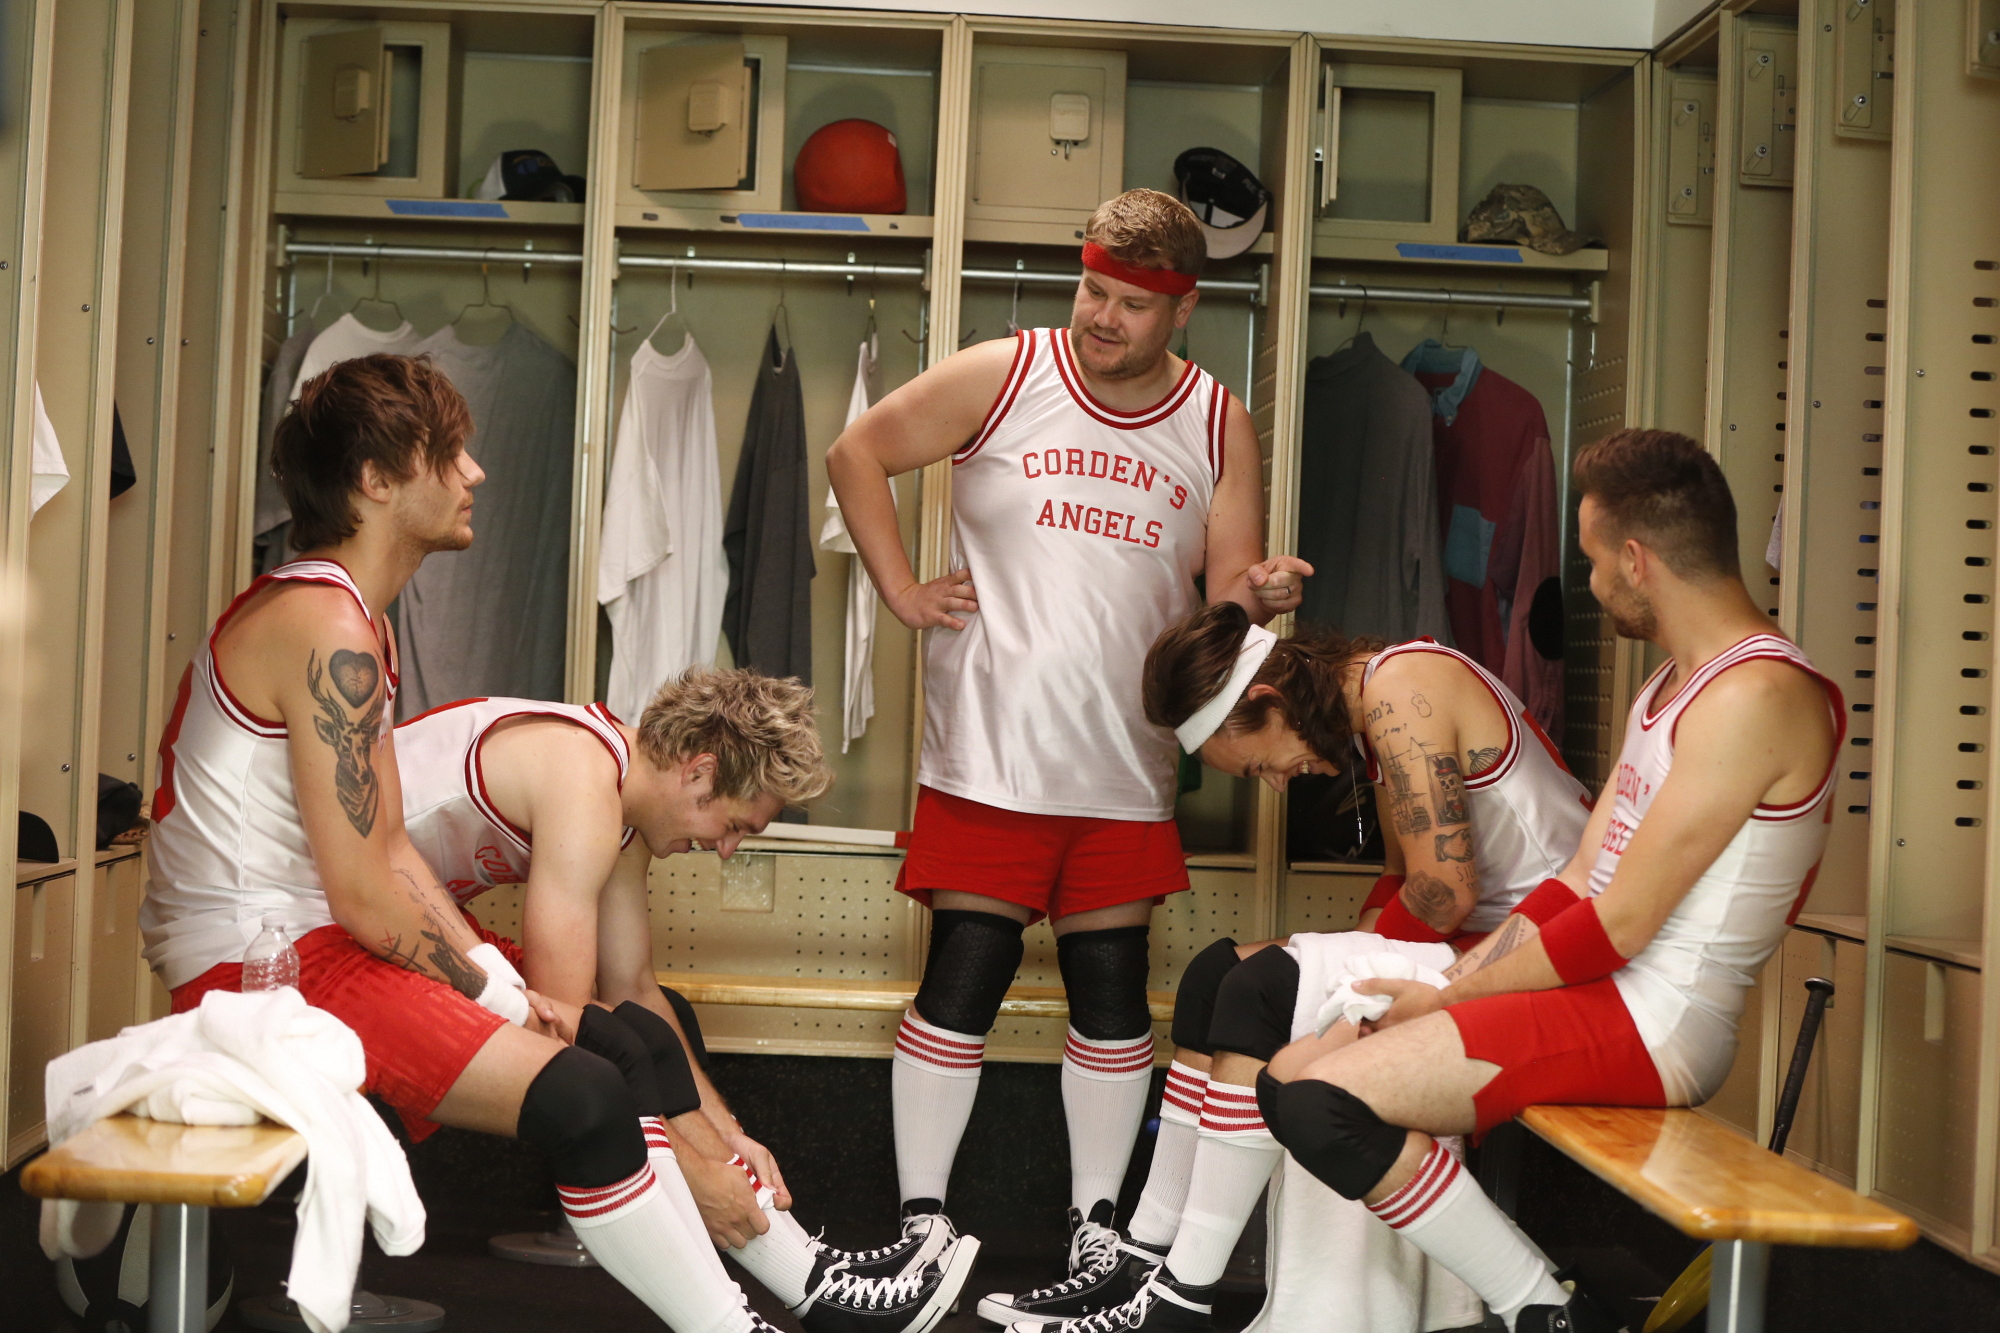 James pumps up Corden's Angels before the big dodgeball match.